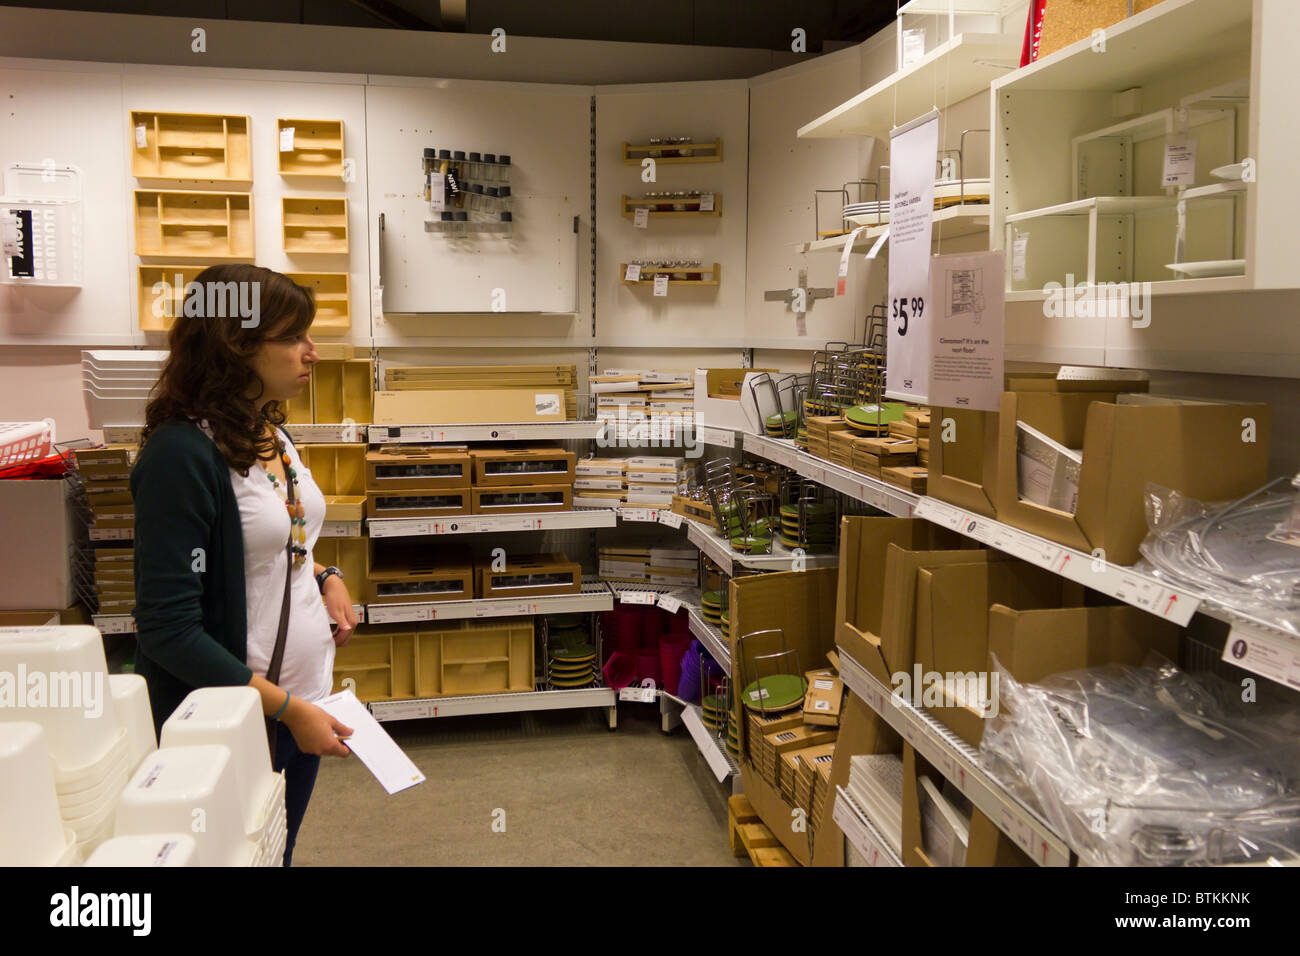 Girl looking at shelves ikea furniture warehouse store for Ikea locations plymouth meeting pa